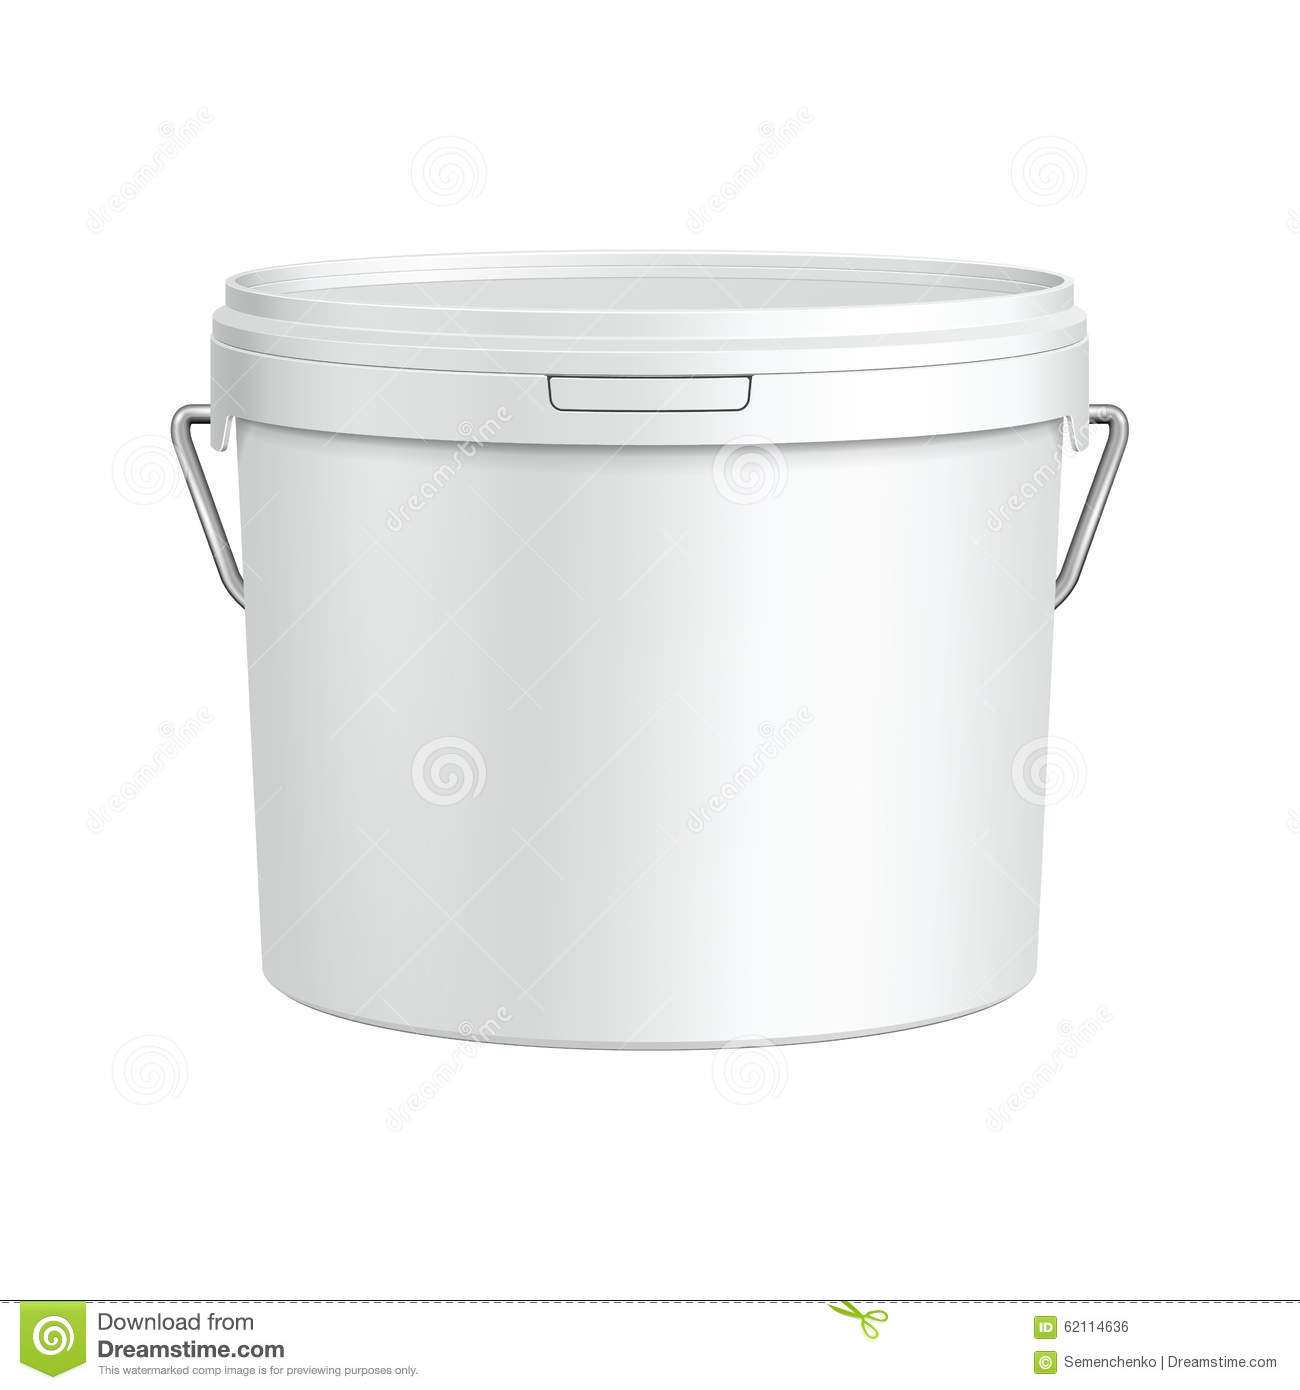 White tub paint plastic bucket container with metal handle for 5 gallon bucket of paint price